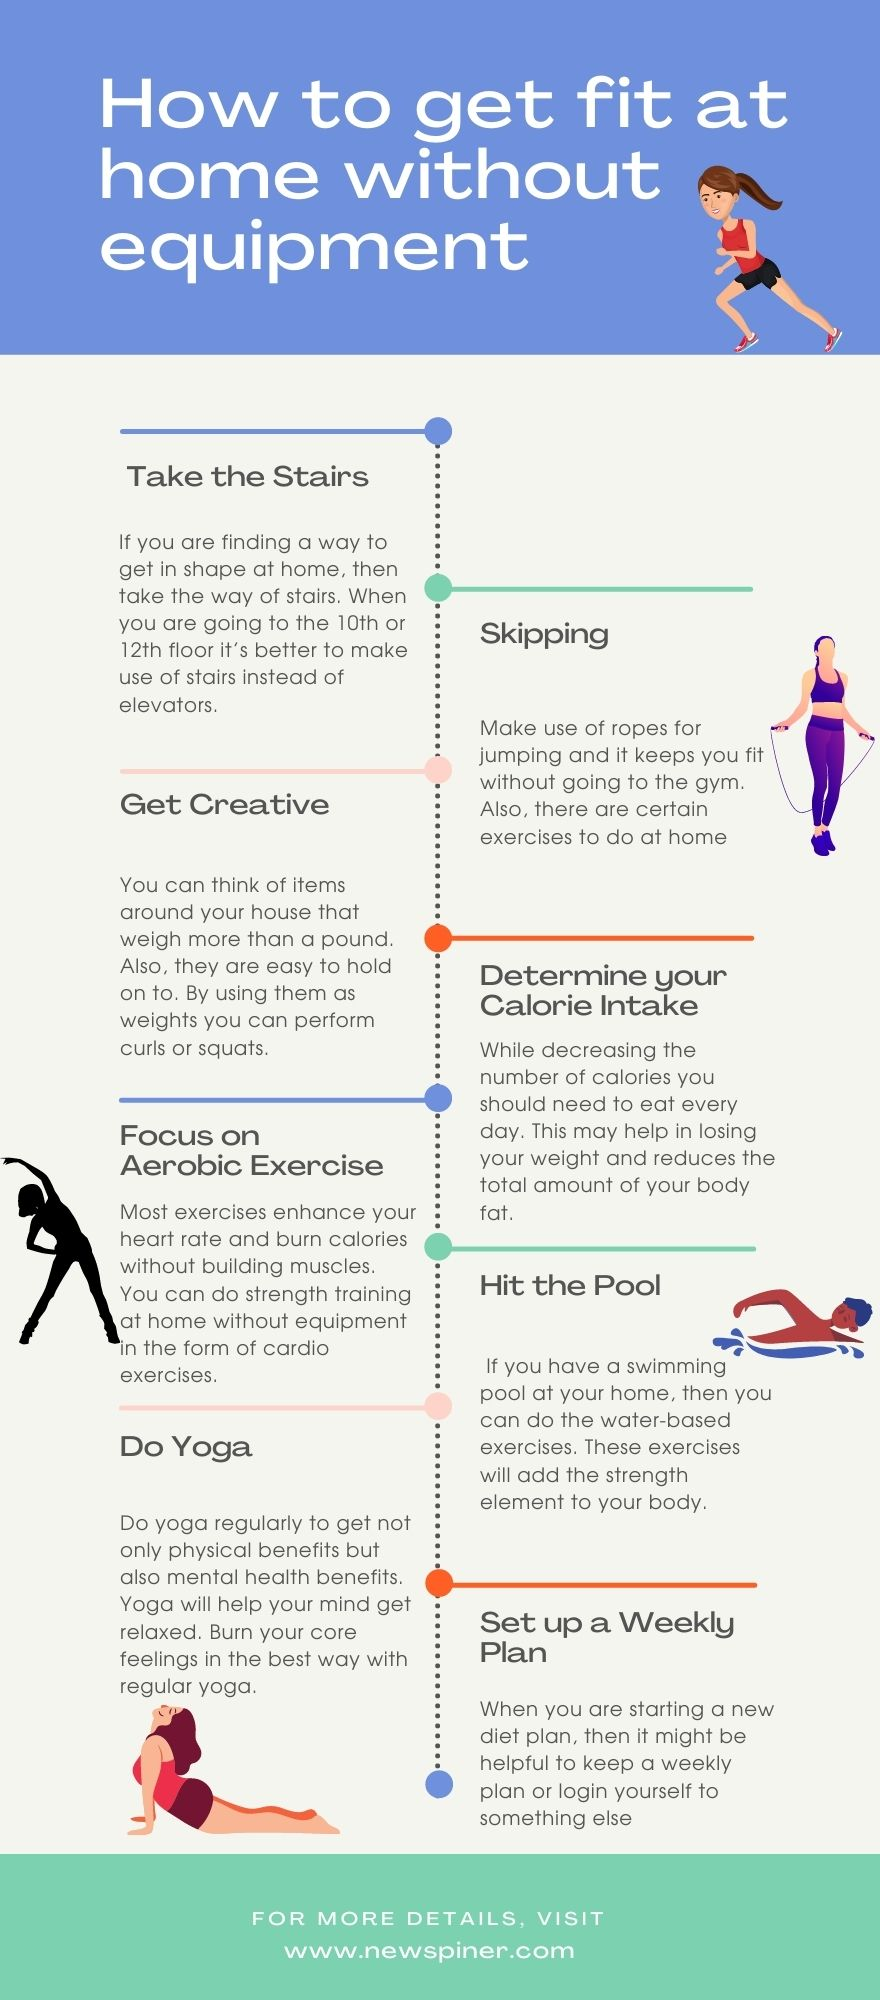 How to get fit at home without equipment infographic